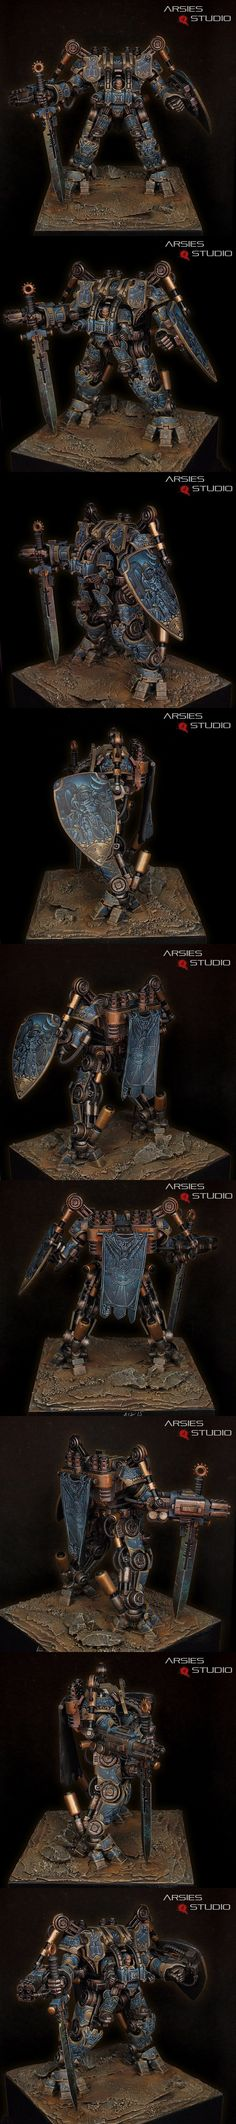 Nemesis Dreadknight, Tribute to Franciuus